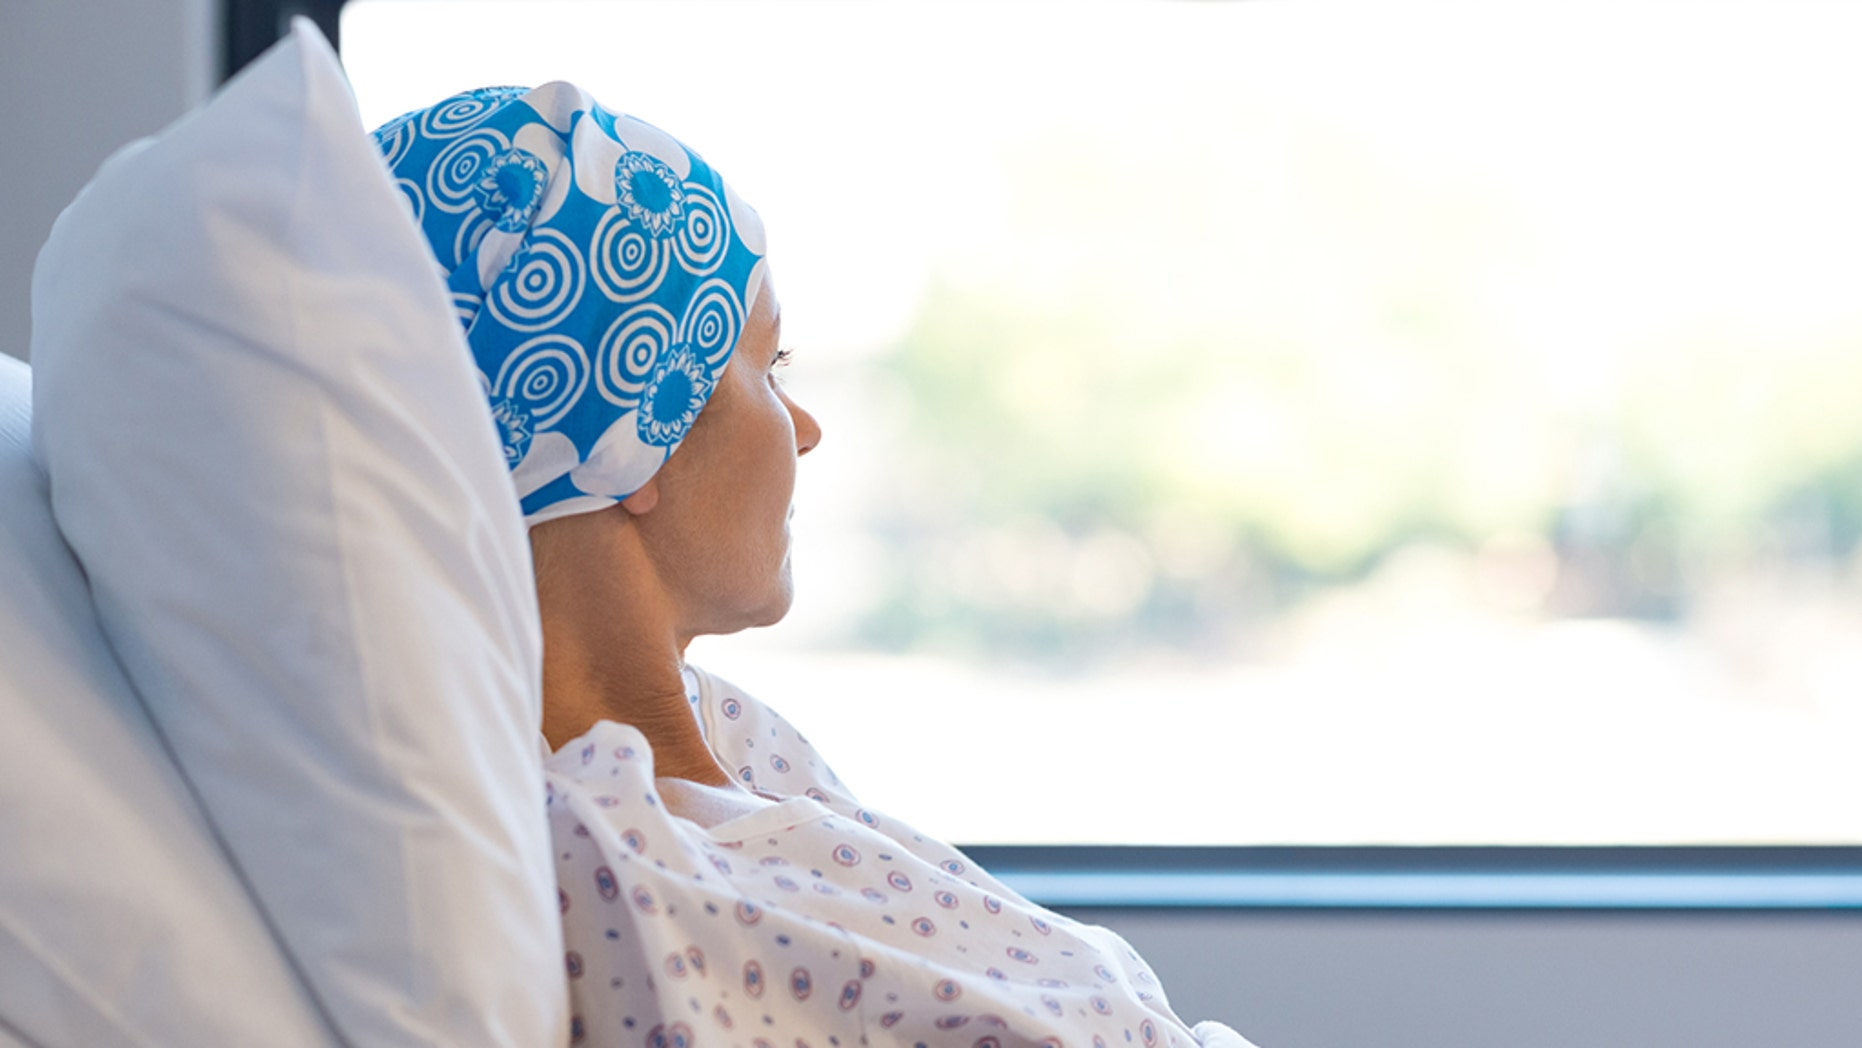 The Ohio woman claims she is now cancer free following the clinical trial.